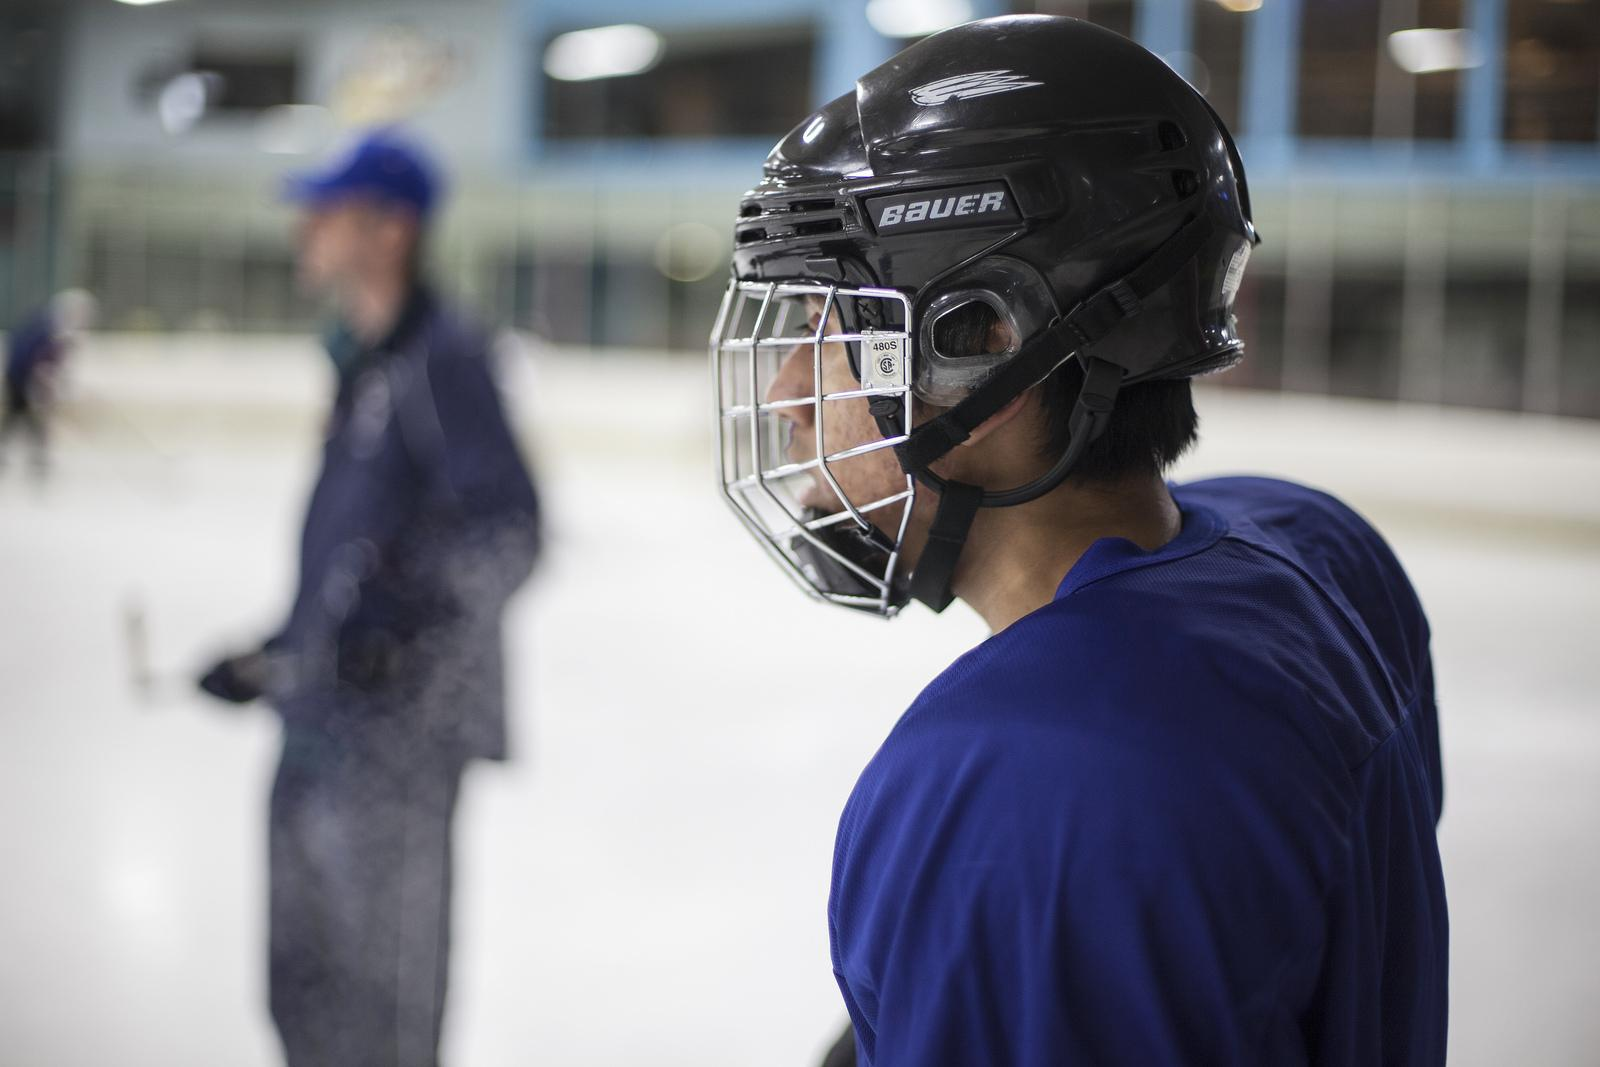 Matan Geller, SF state freshman, takes a second to breath during hockey practice on Sunday, Sept. 29, 2013 at the Ice Oasis. The team members each pitch in for ice time to be able to practice every Sunday at 10:45pm in Redwood City, Calif. Photo by Dariel Medina / Xpress